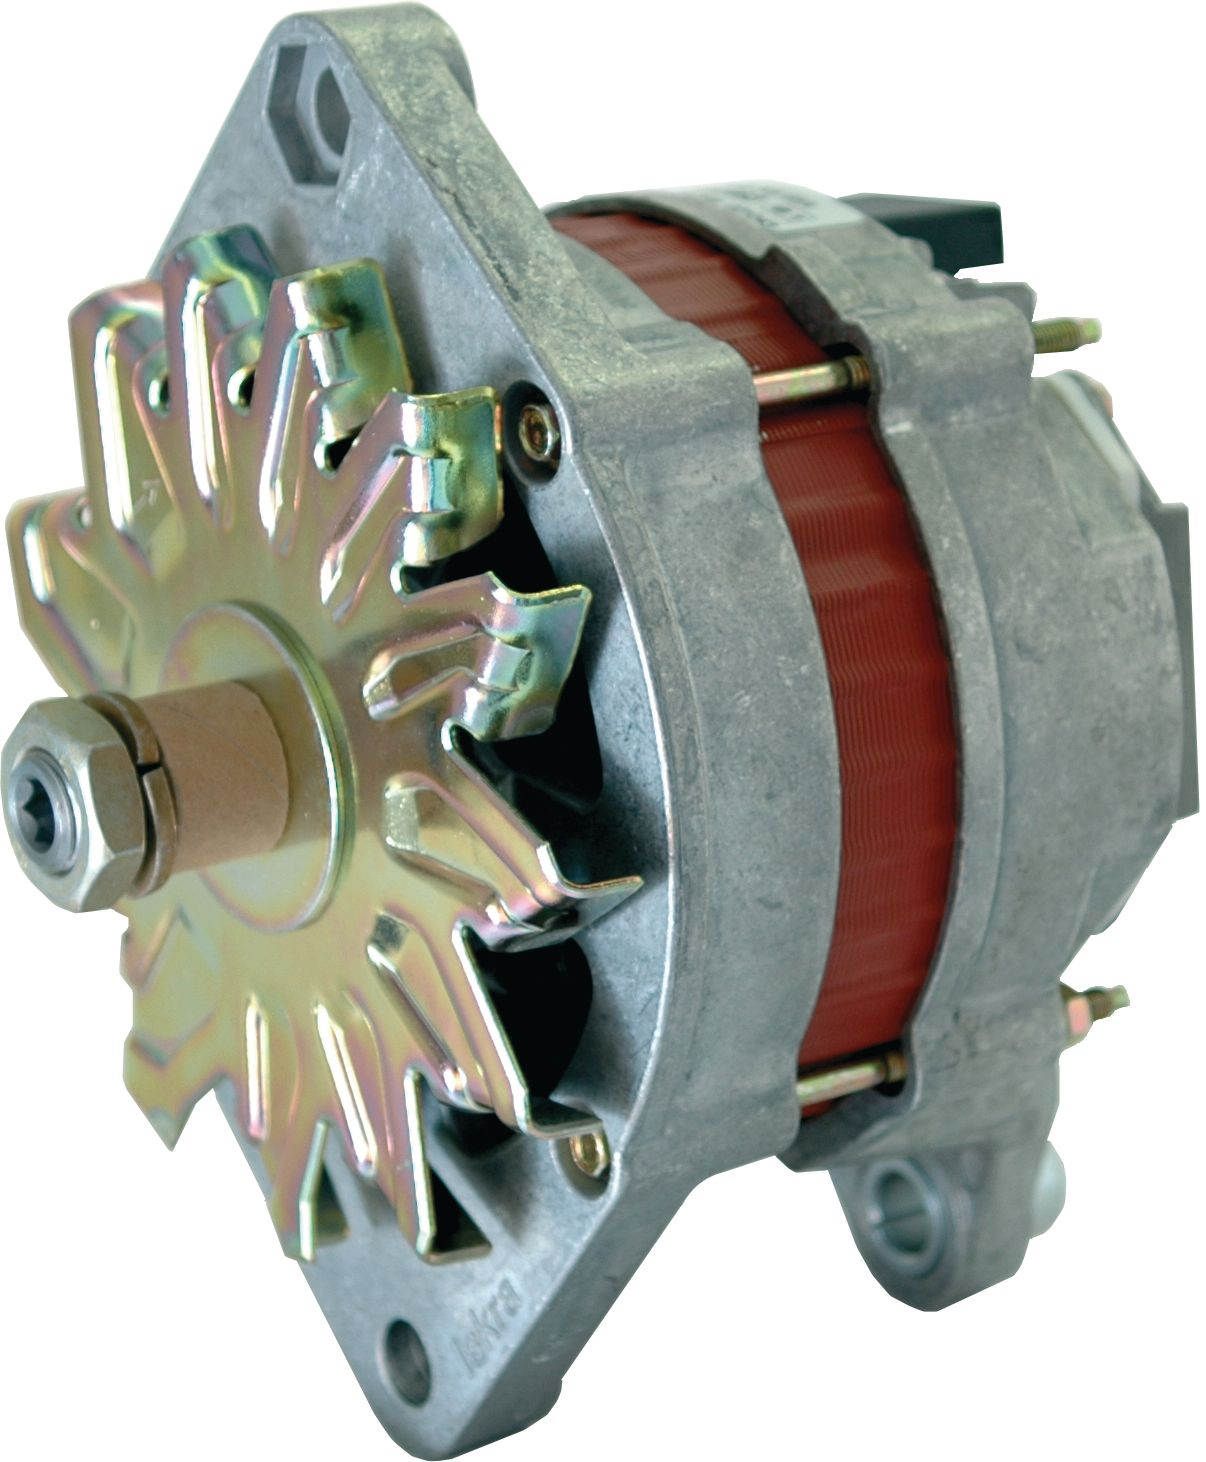 DEUTZ-FAHR ALTERNATOR (ISKRA) 35924